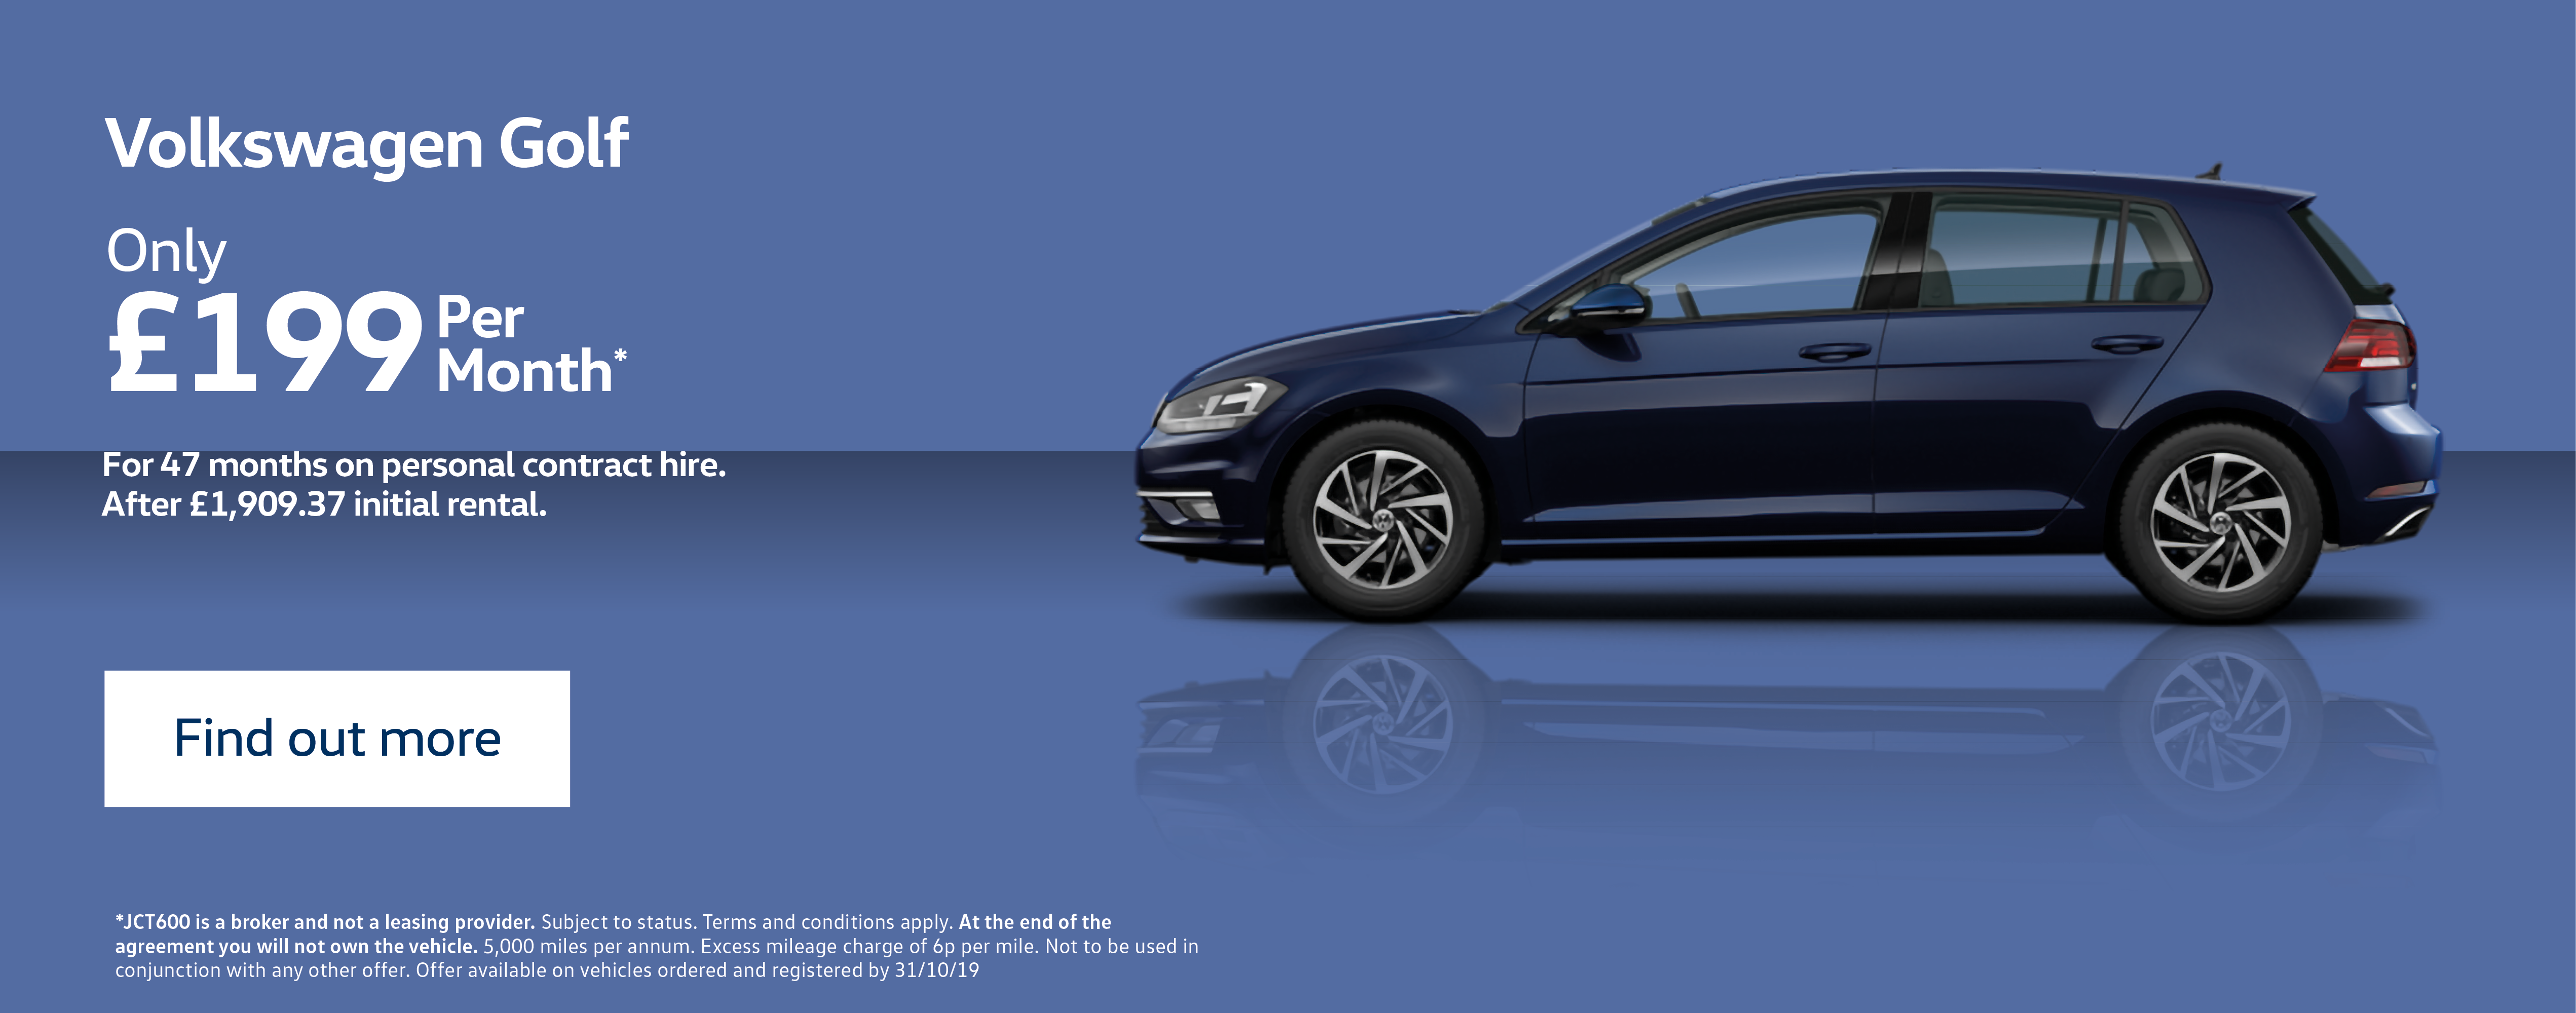 Benefits of Buying a Volkswagen Approved Used Car from Sinclair